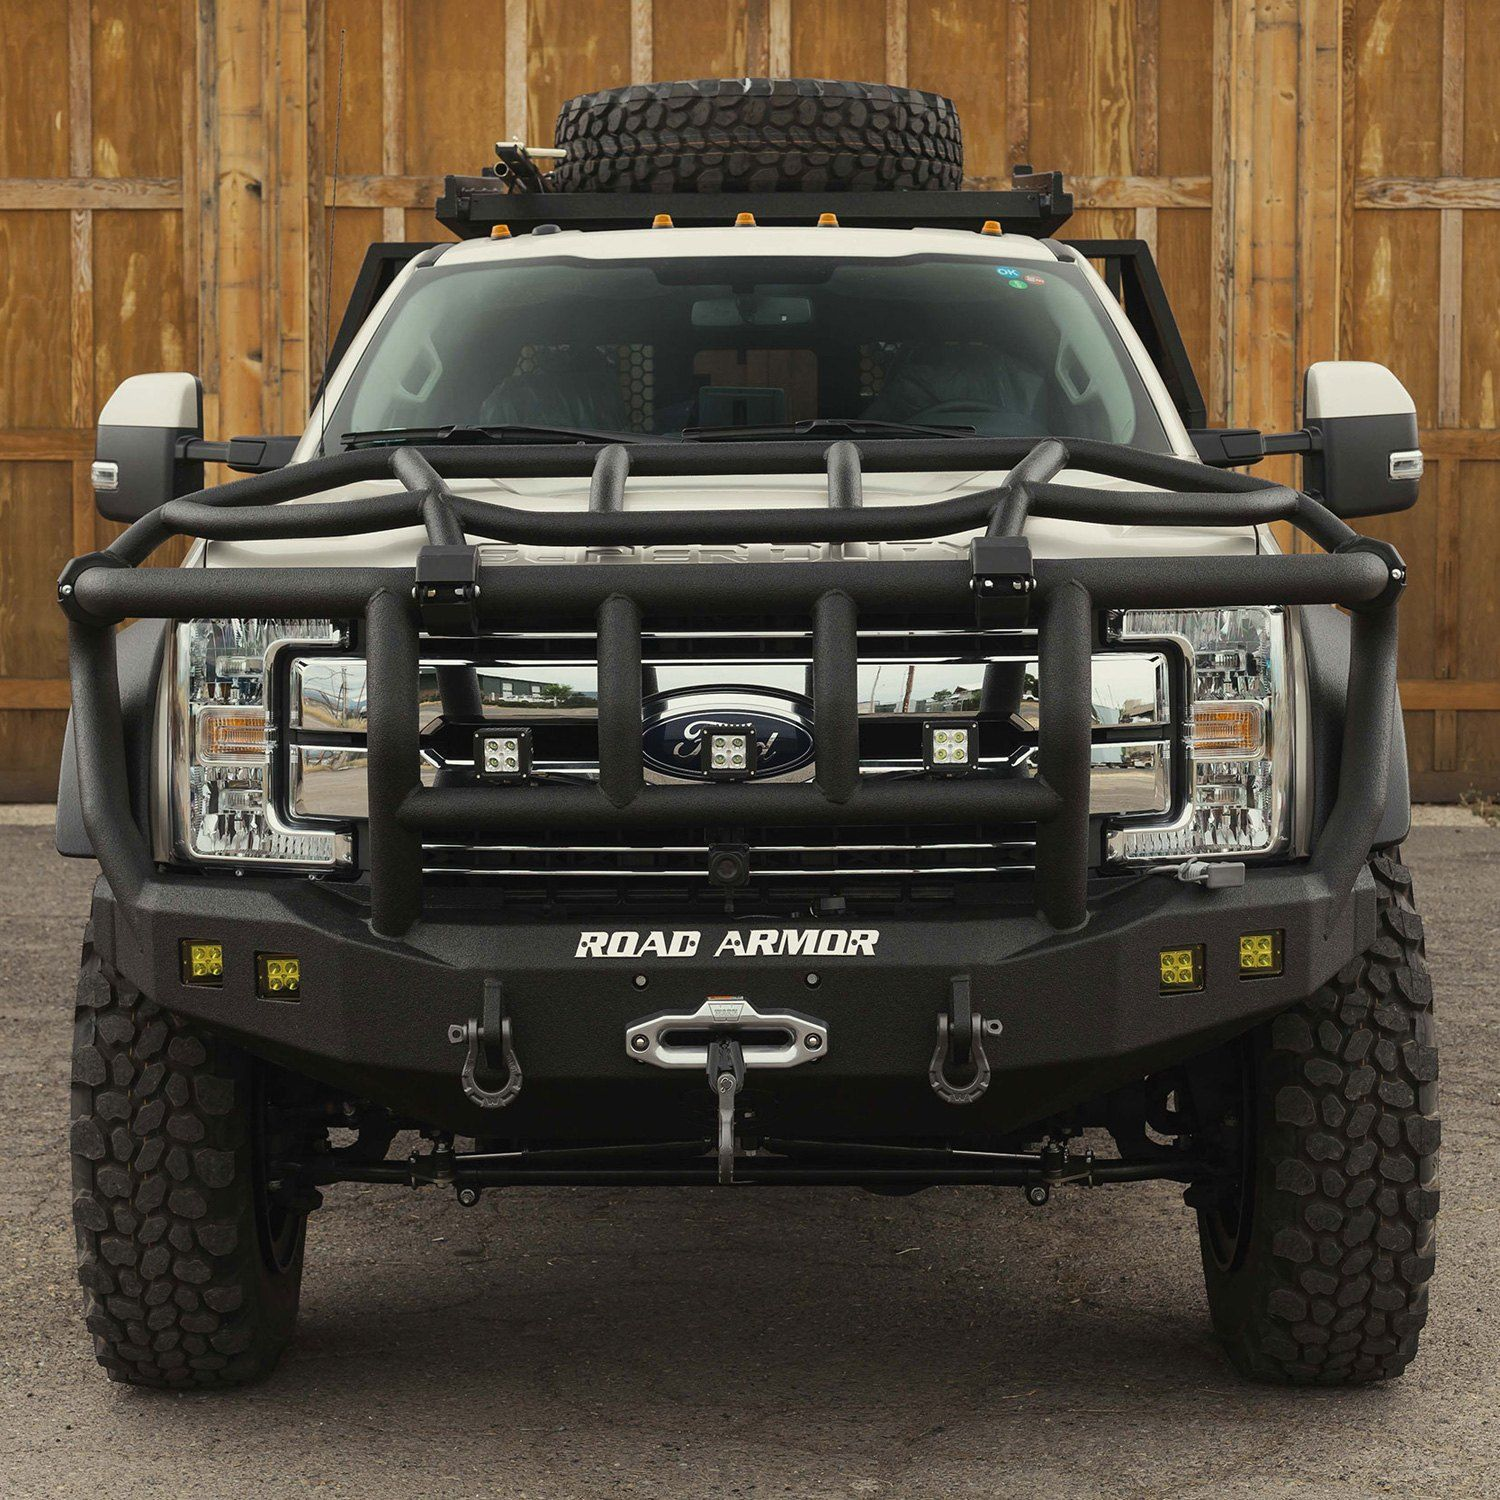 Road Armor Stealth Series Full Width Front Winch Hd Bumper With Intimidator Brush Guard Custom Truck Bumpers Custom Trucks Truck Bumpers